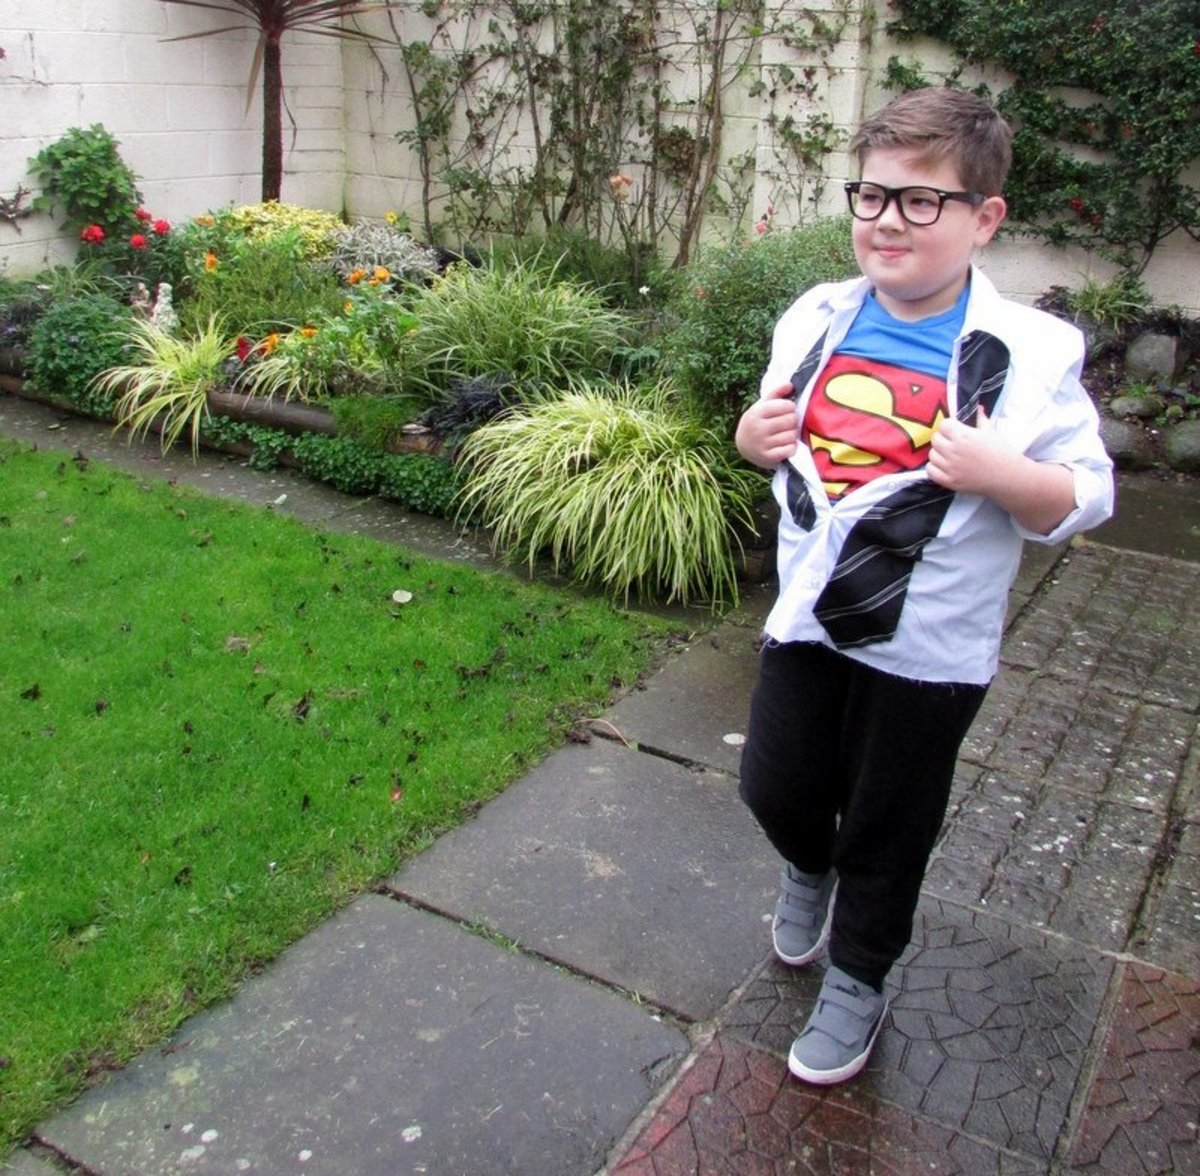 This is my son in his copmpleted Superman/Clark Kent Halloween costume.